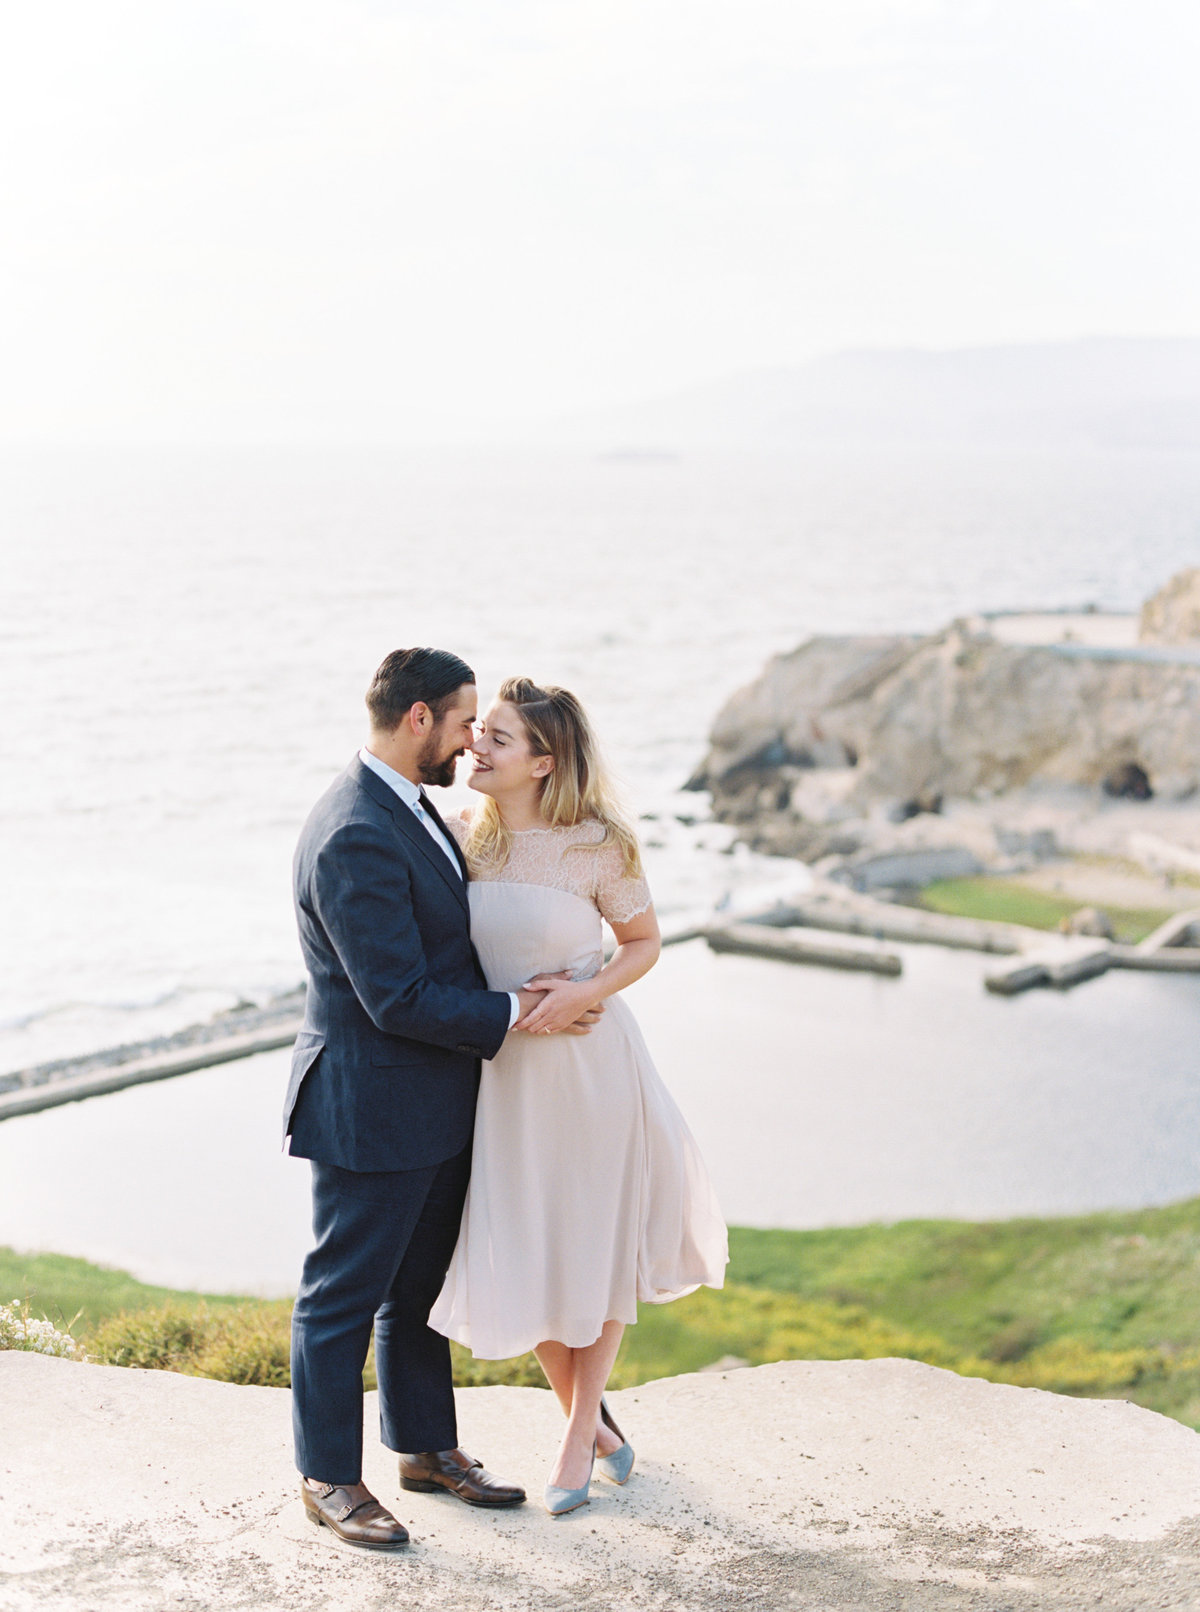 Carly + Luis San Francisco Engagement Session - Cassie Valente Photography 0002